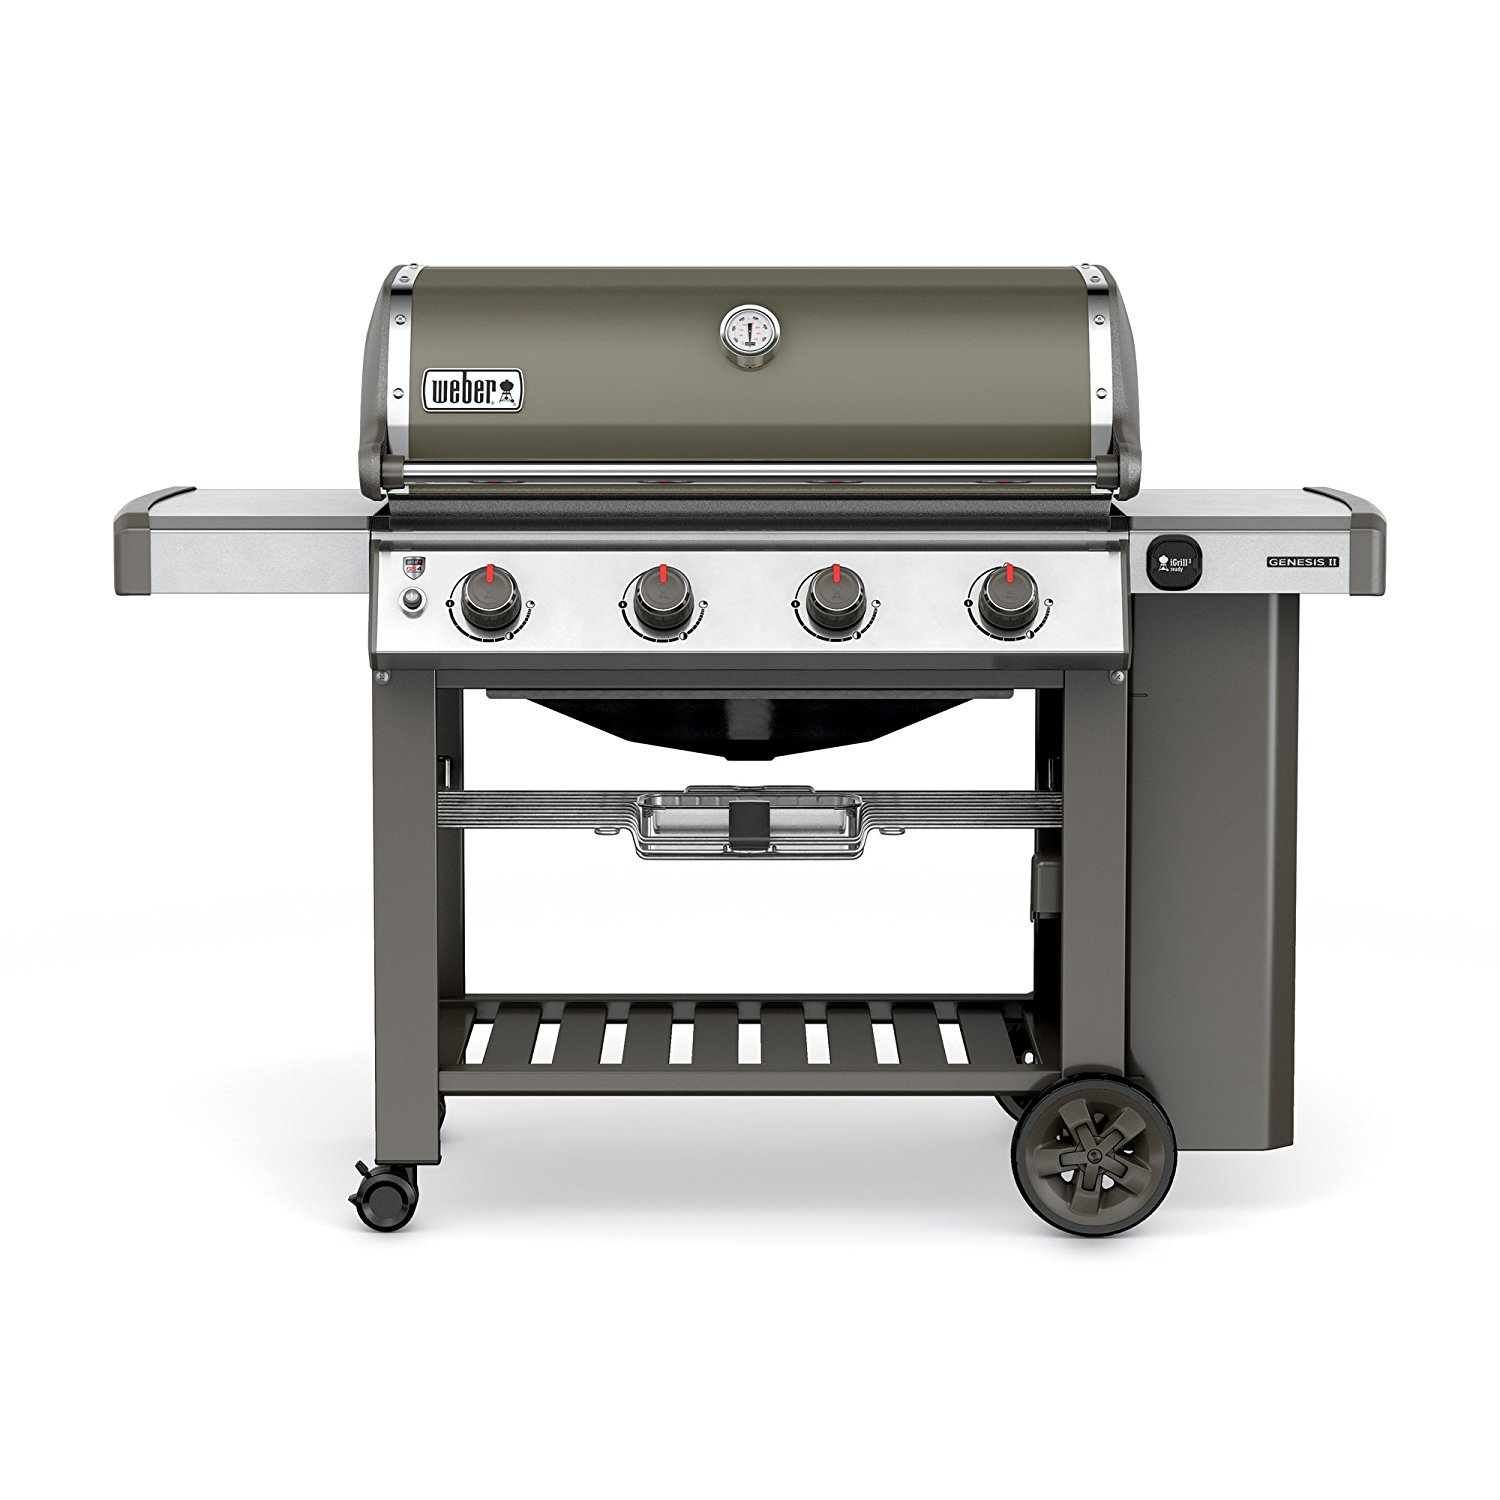 10 Best Portable & Natural Gas Grill for the Money 2018 - IKnowTheBest